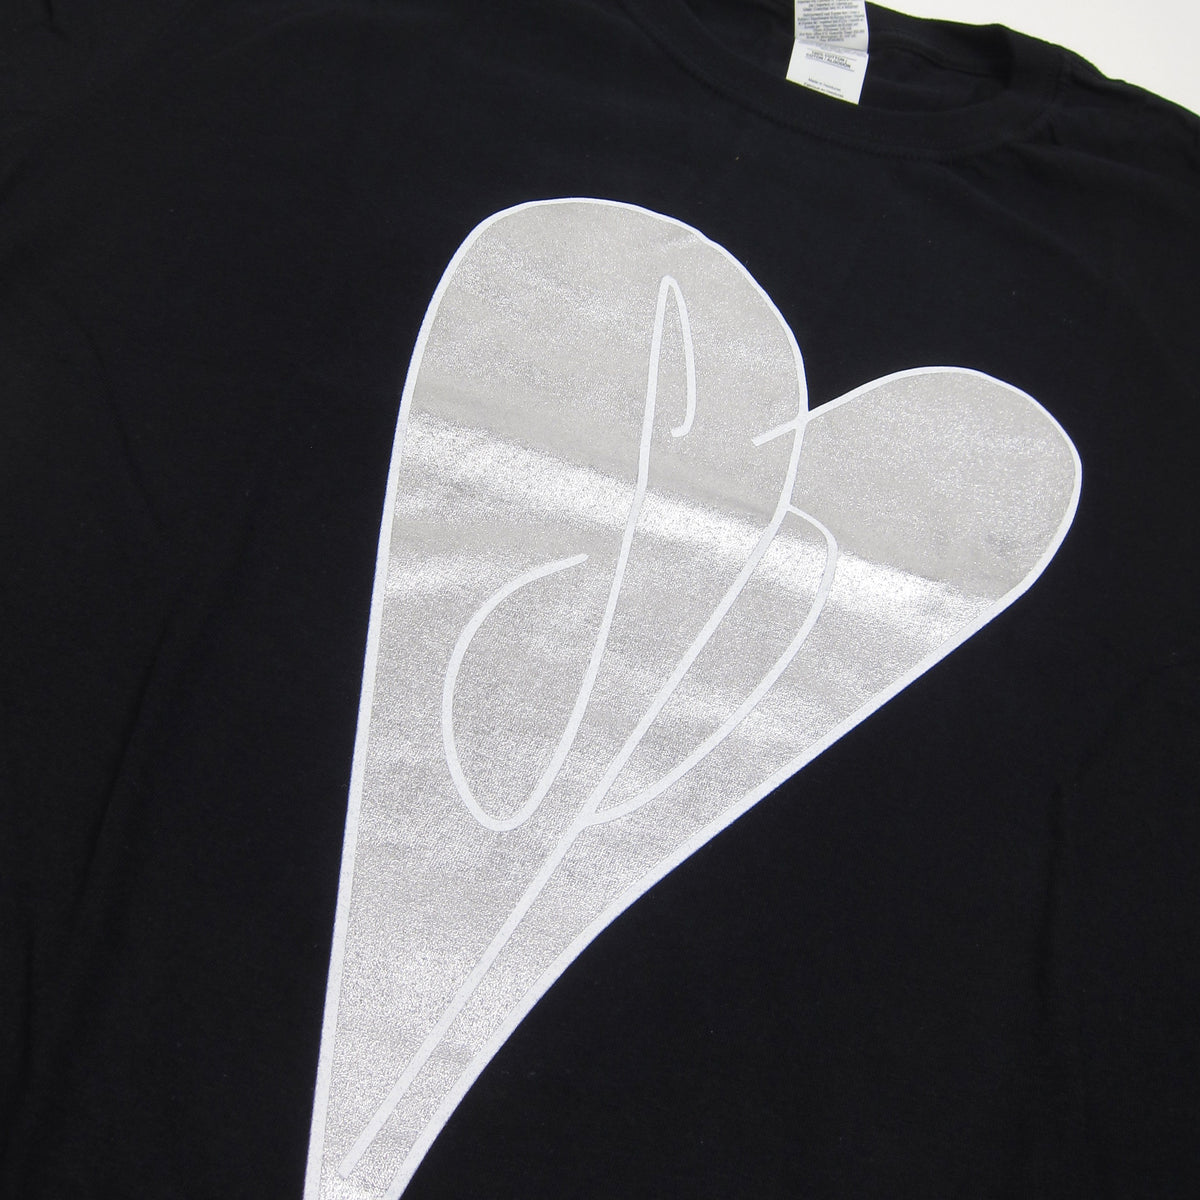 Smashing Pumpkins: Initial Heart Shirt - Black